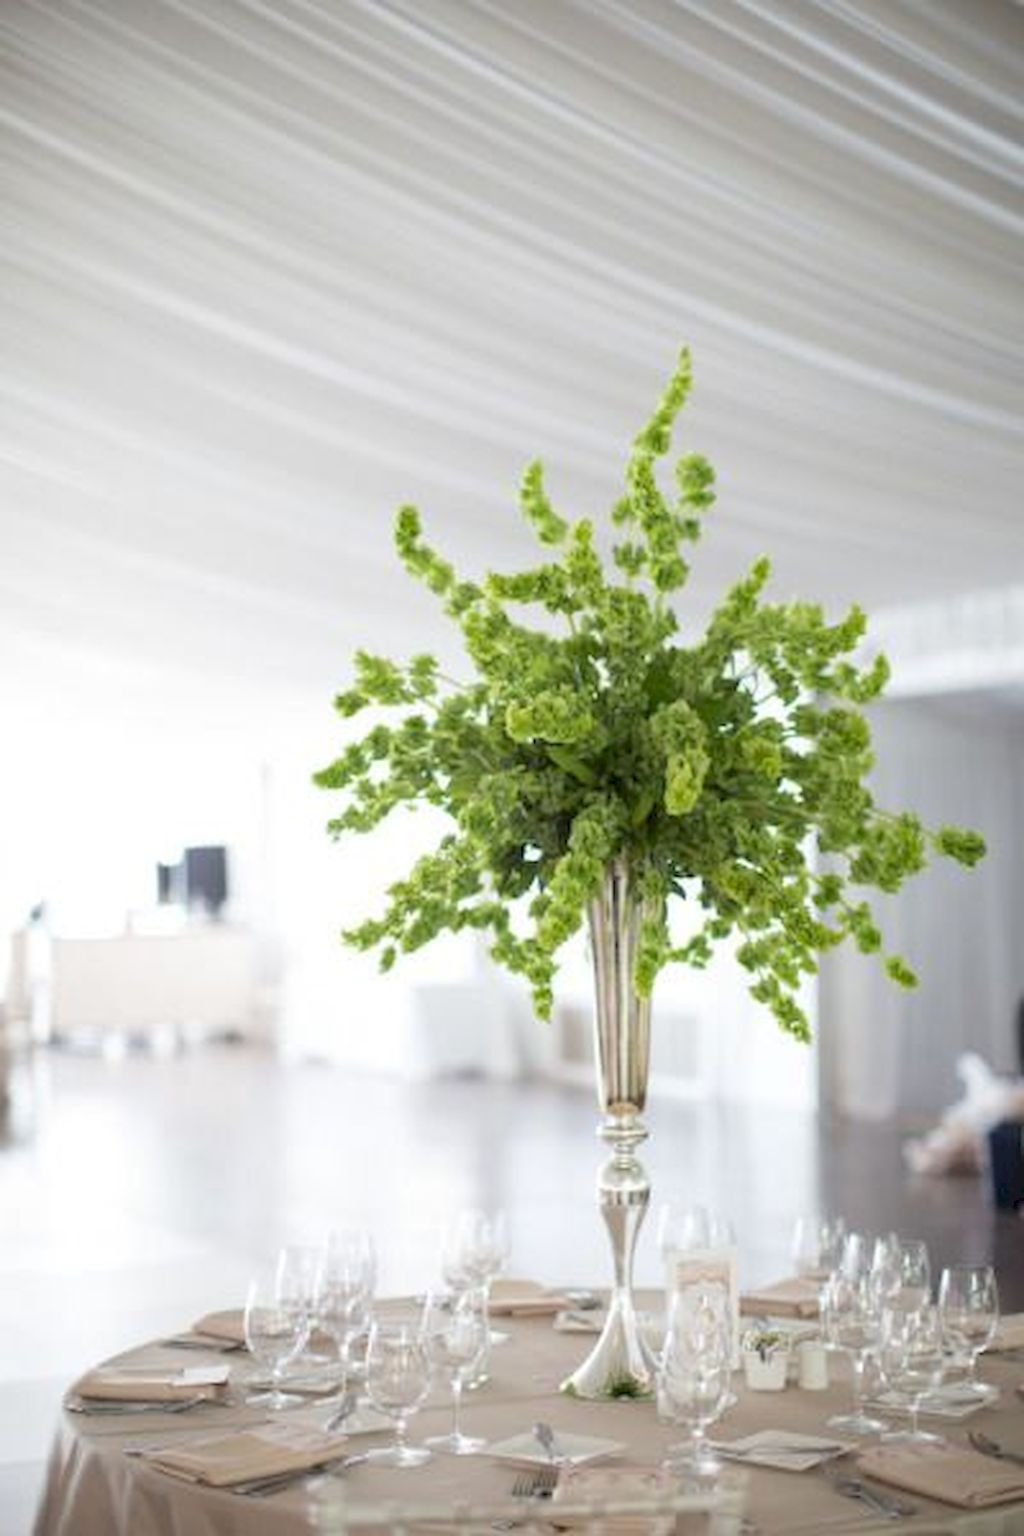 65+ Simple Greenery Wedding Centerpieces Decor Ideas | Pinterest ...